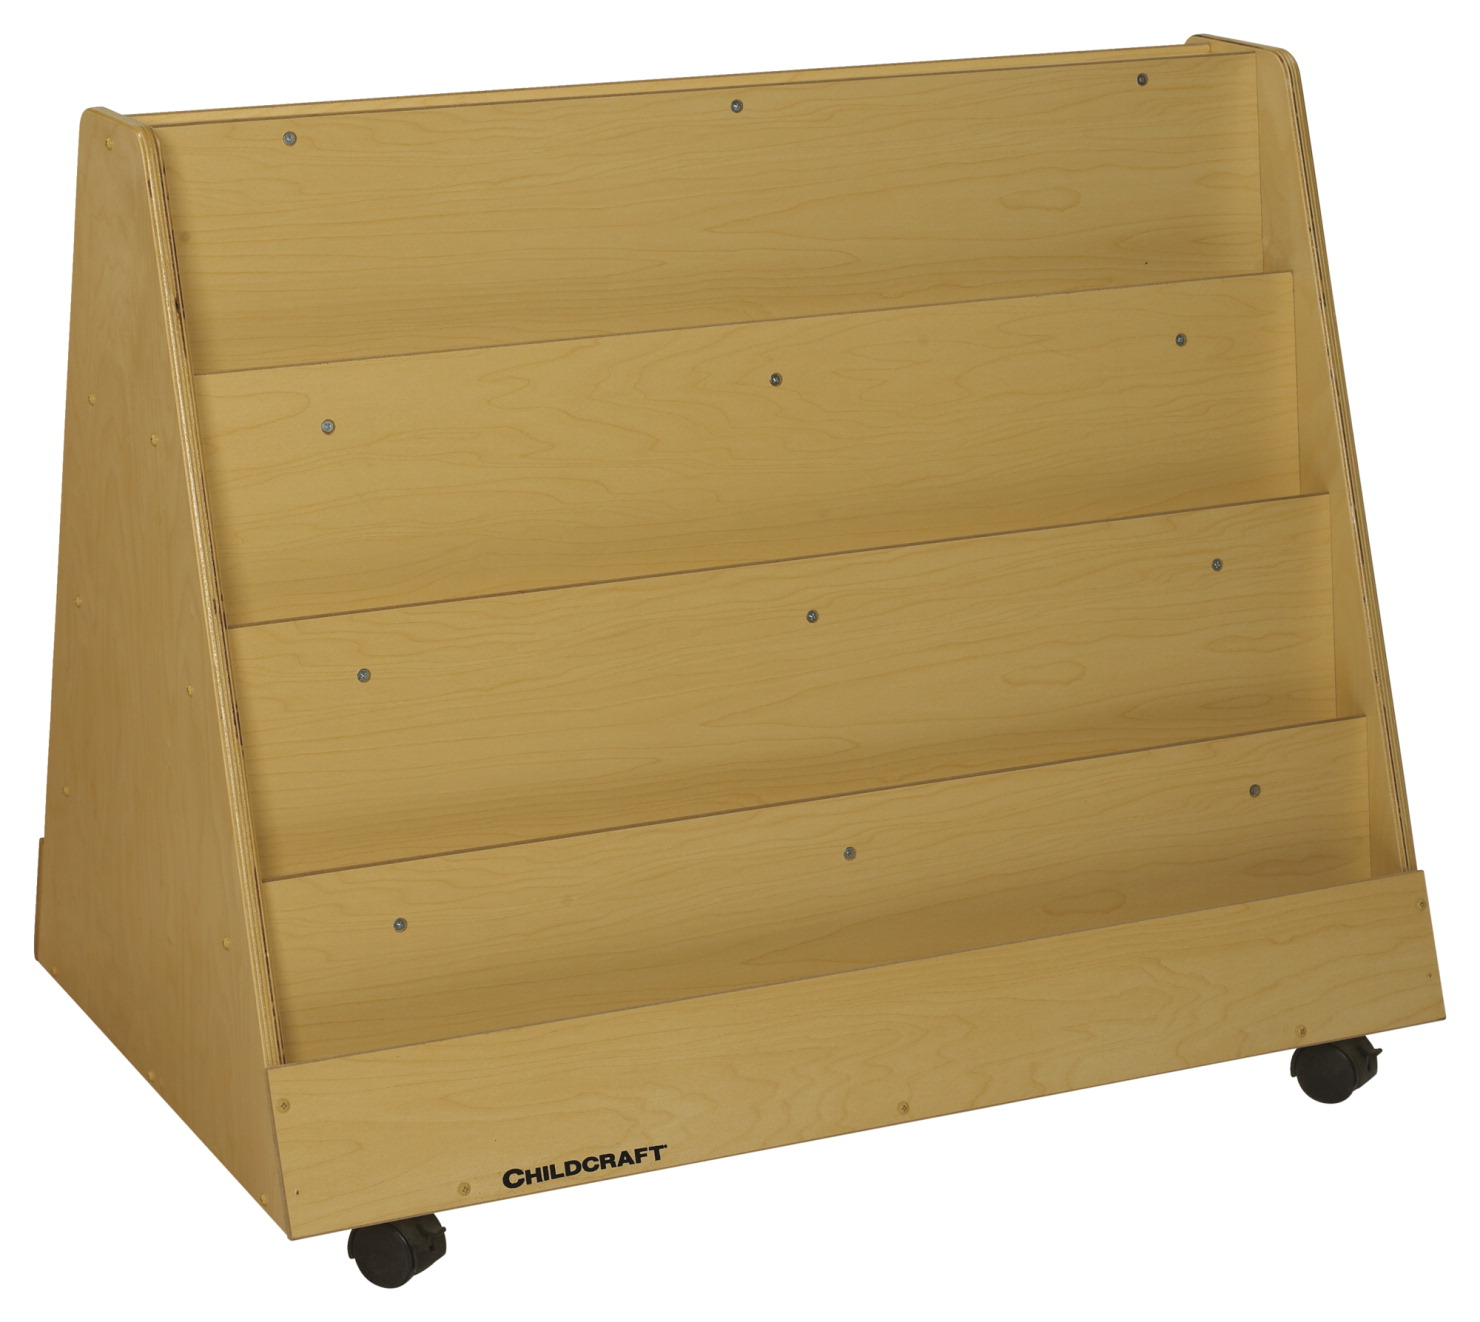 super popular 3905a 2253e Childcraft Mobile Book Display, Double Sided, 36 x 23-3/4 x 30-1/4 Inches